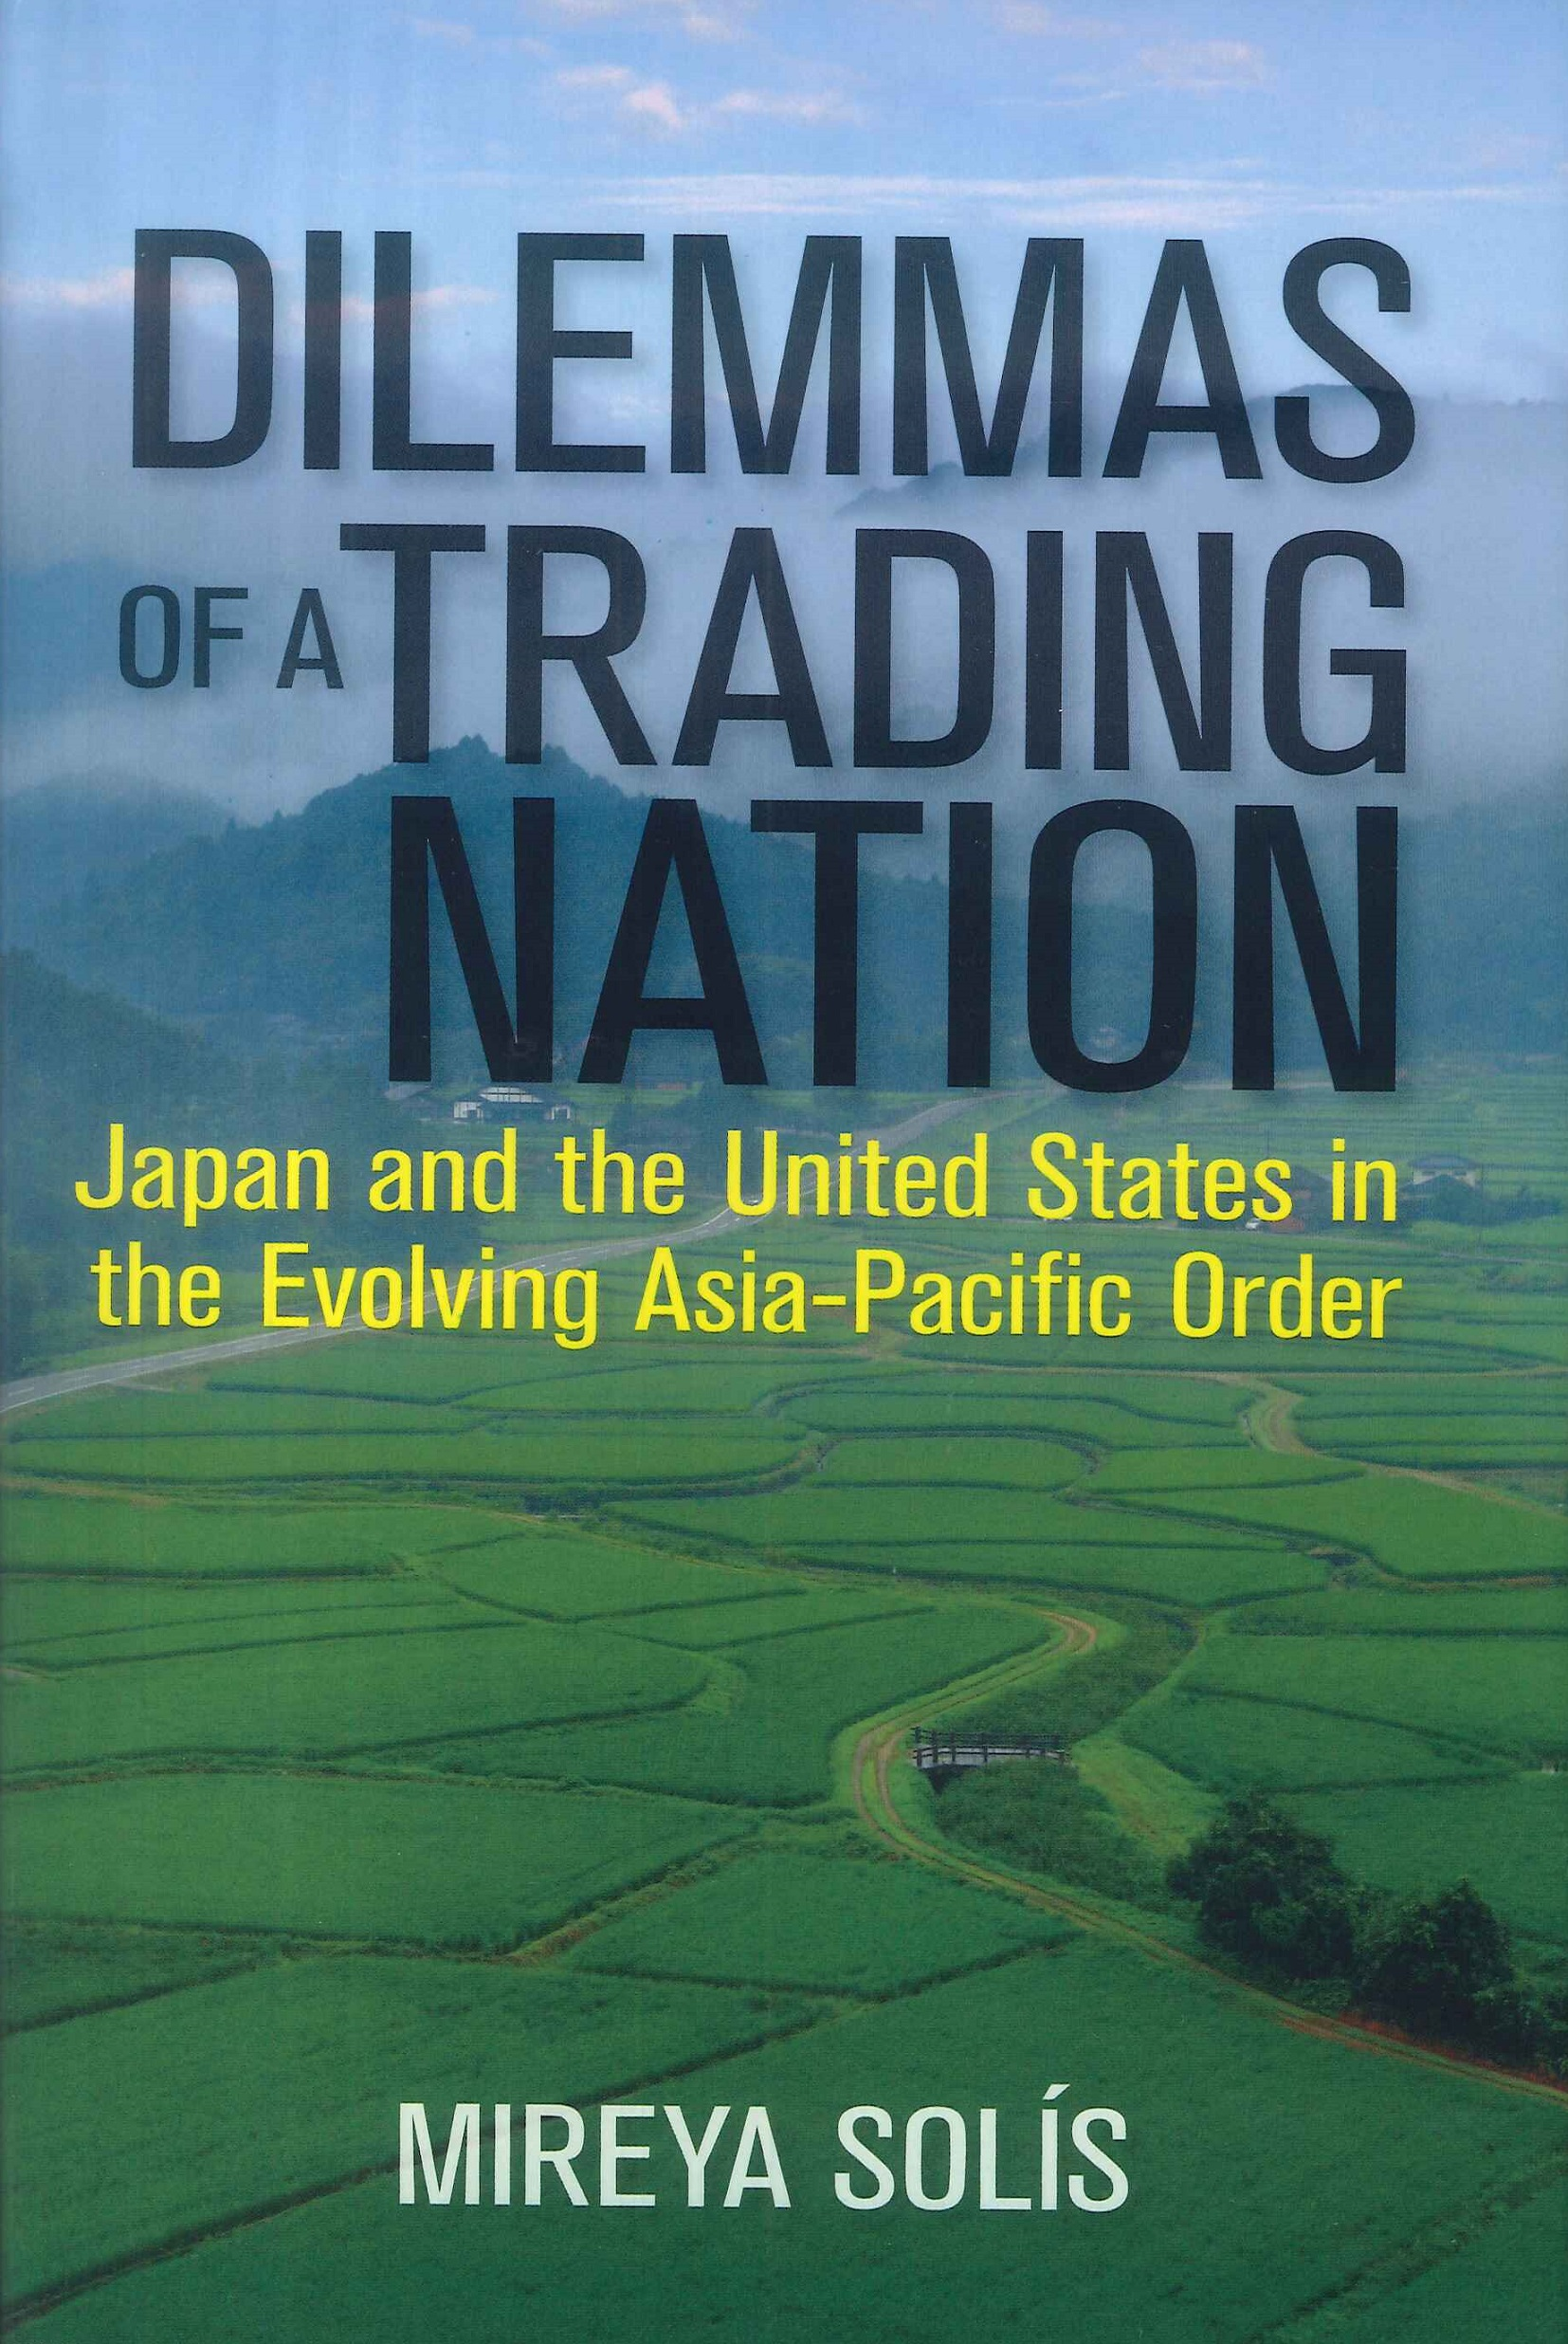 Dilemmas of a trading nation:Japan and the United States in the evolving Asia-Pacific order